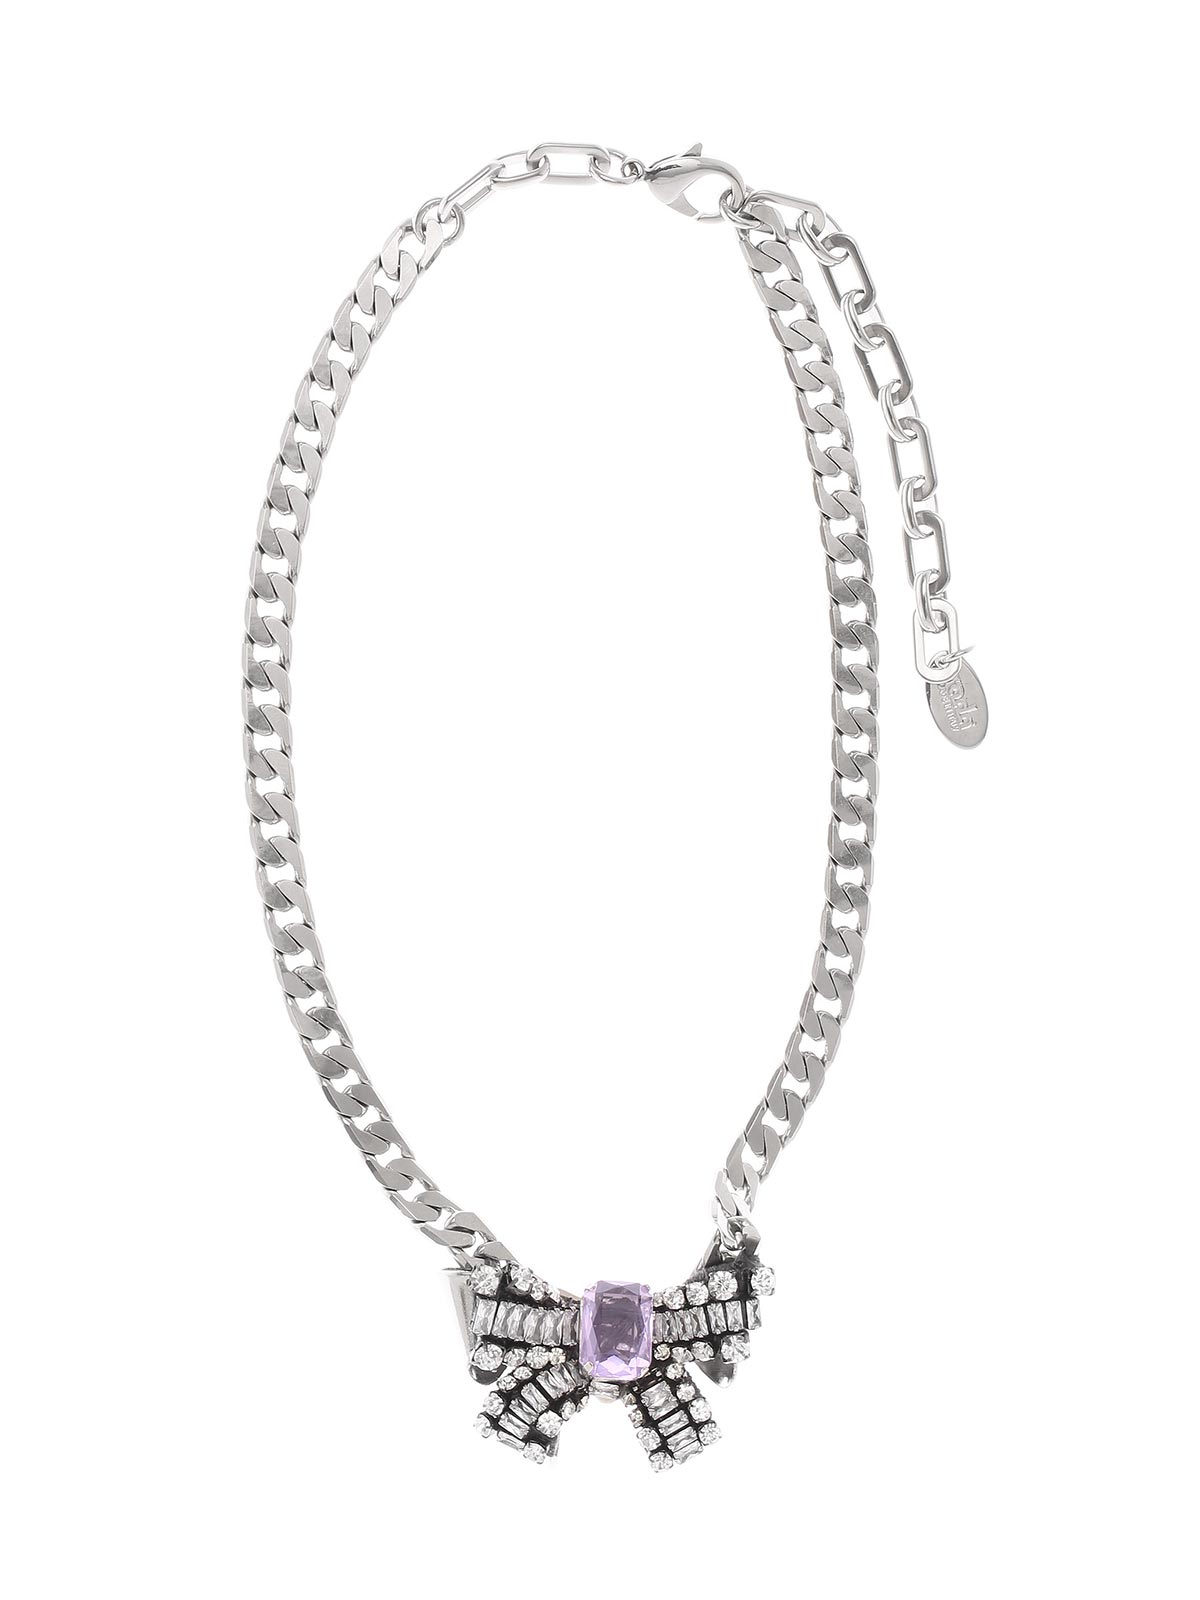 Chain necklace with crystal bow pendant